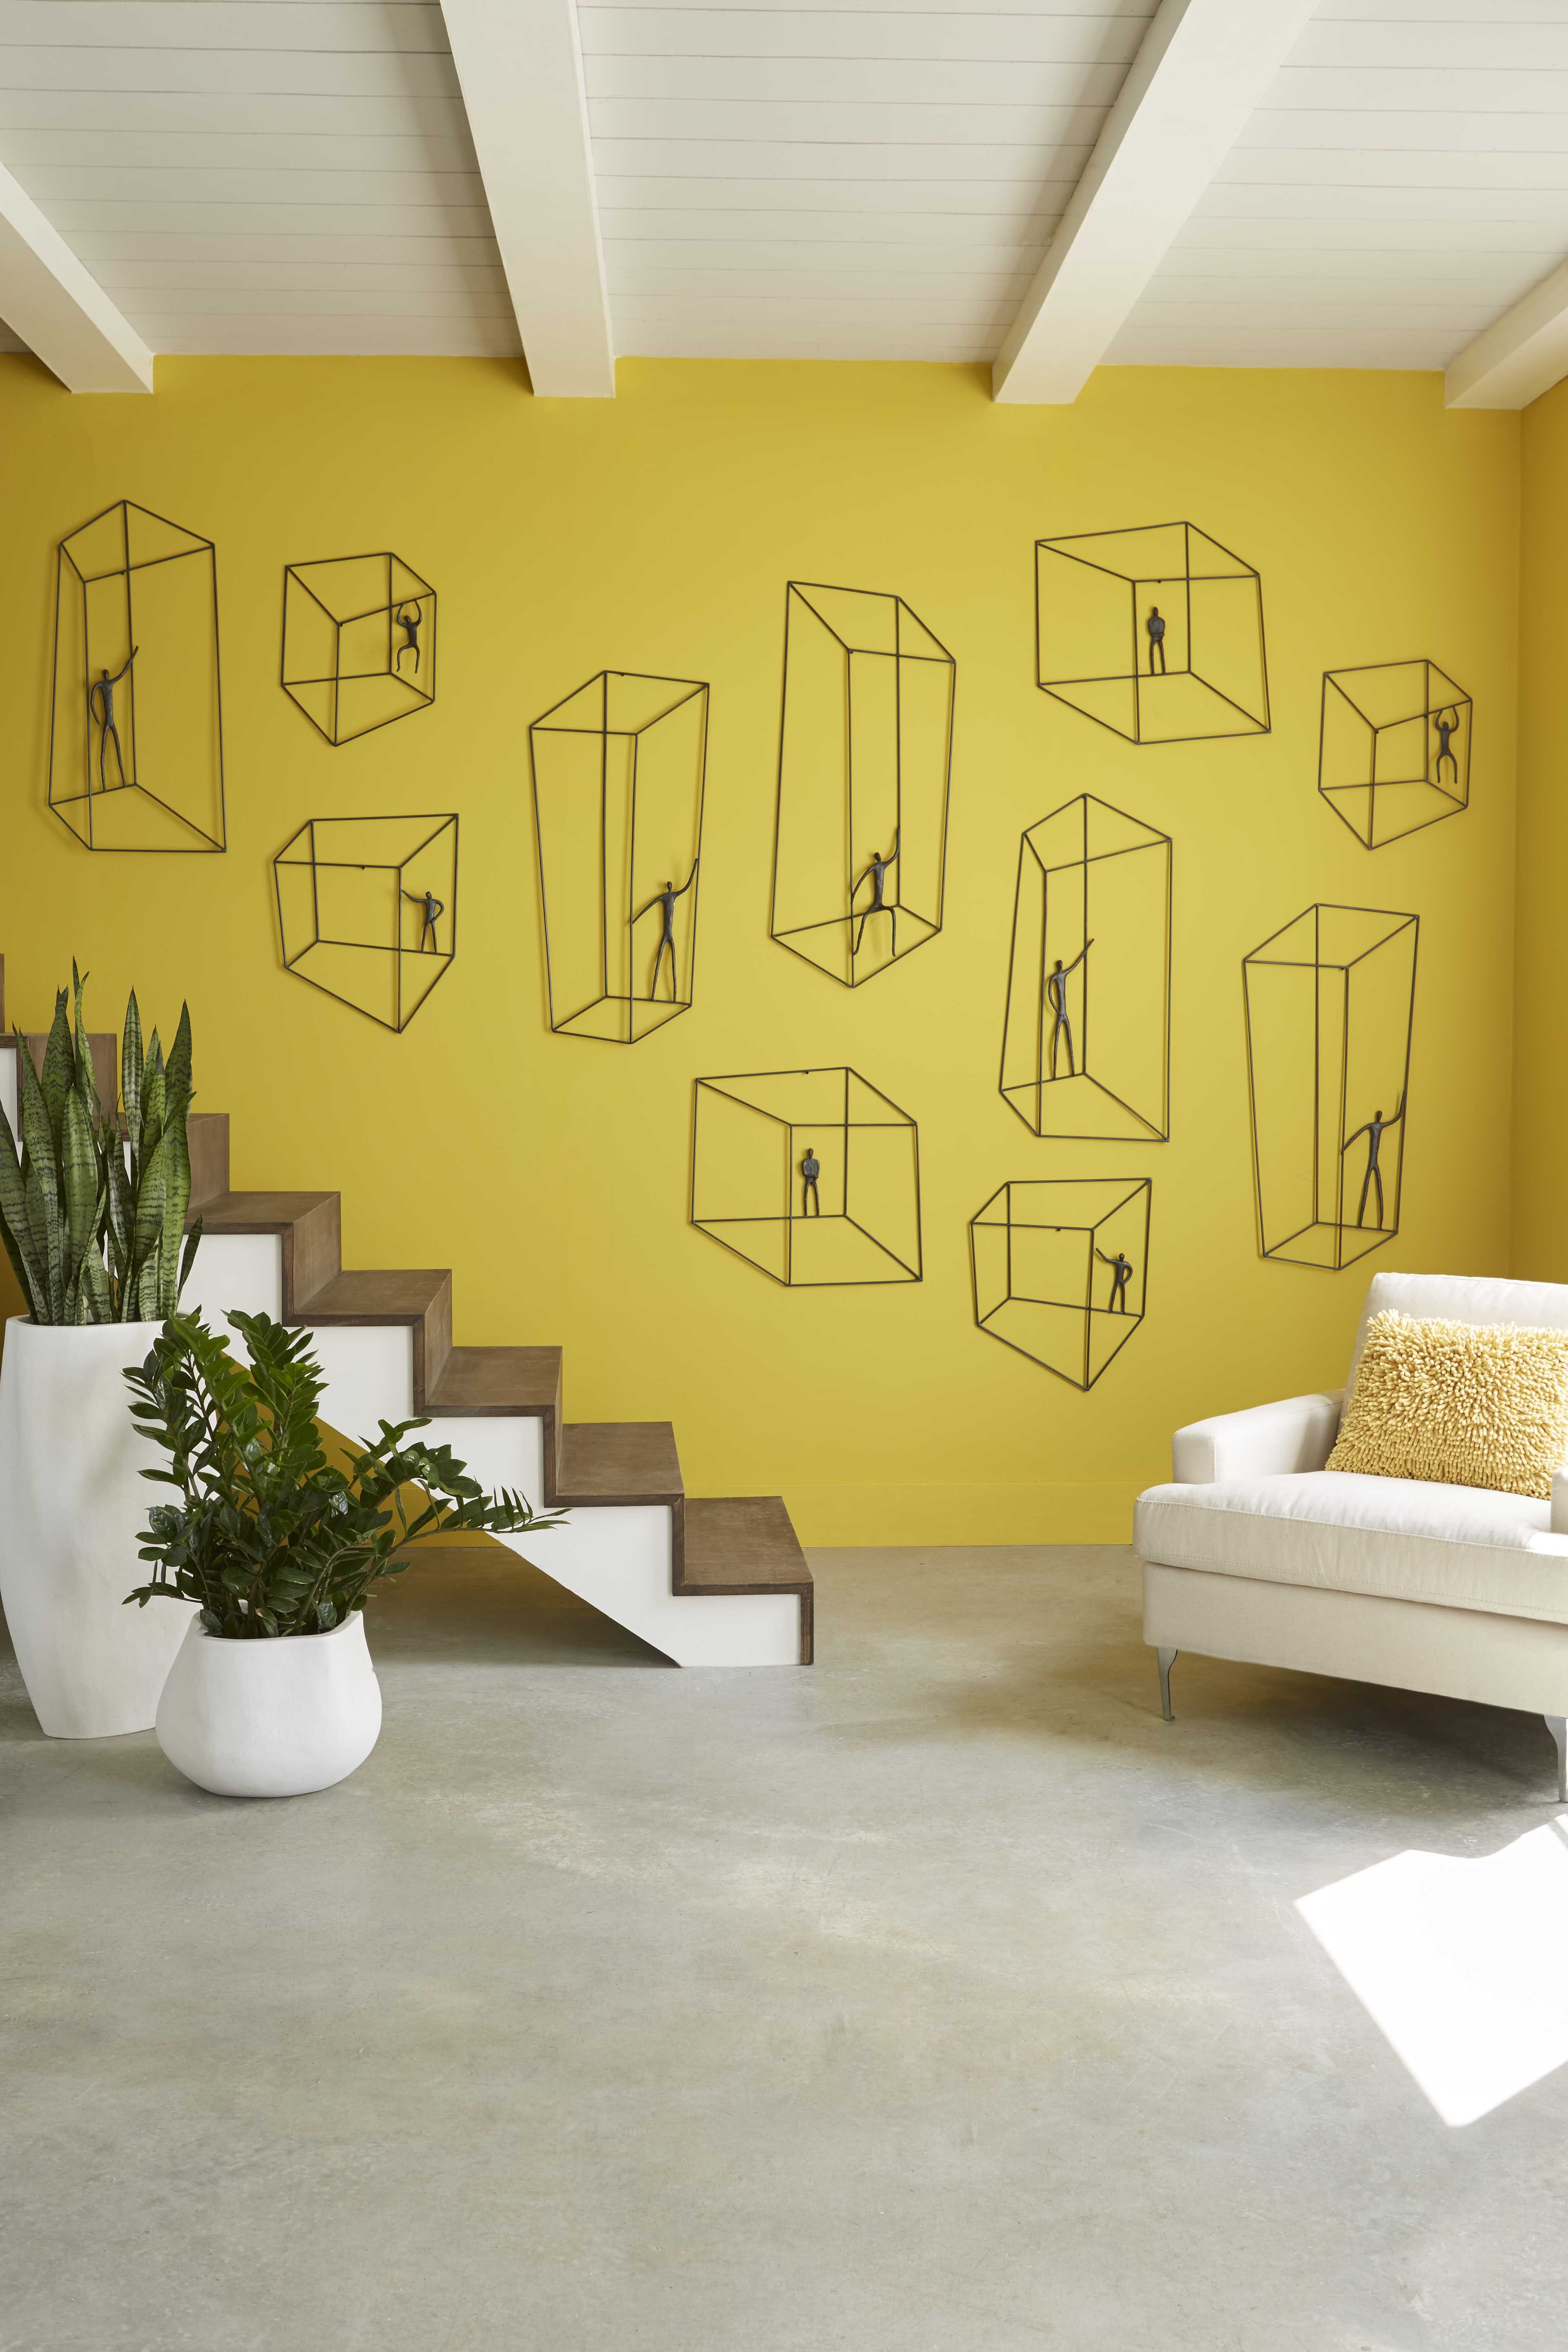 Our Perspective Wall Art featured up a stair well #dimensional ...